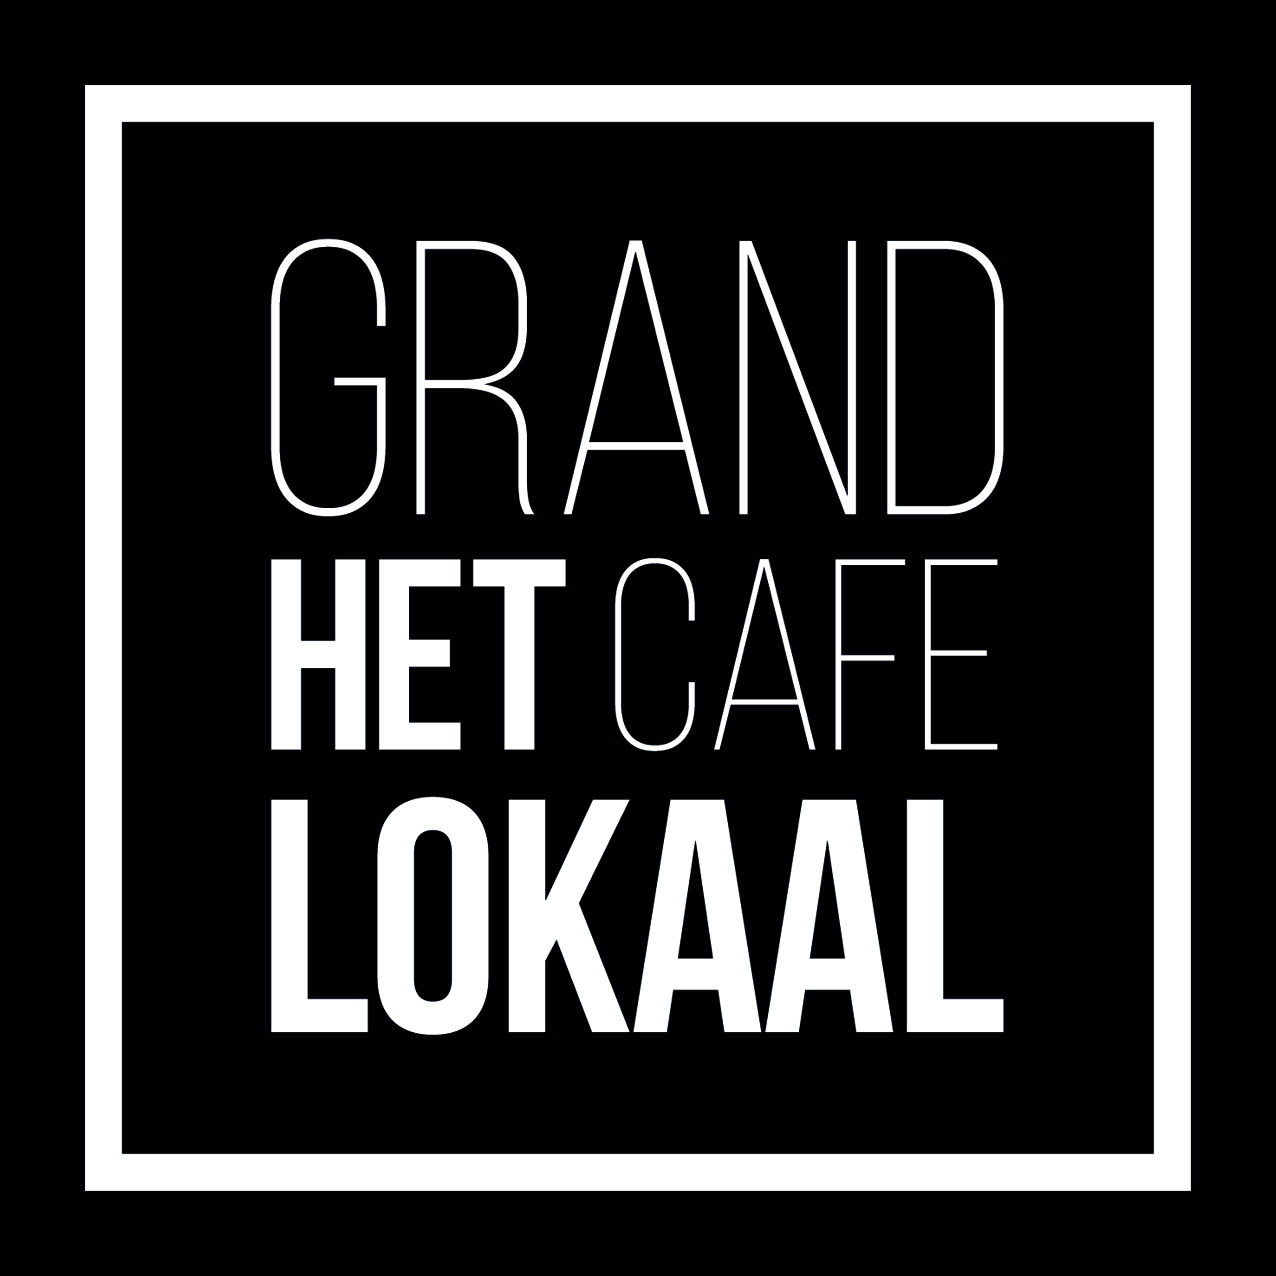 logolokaal.jpg